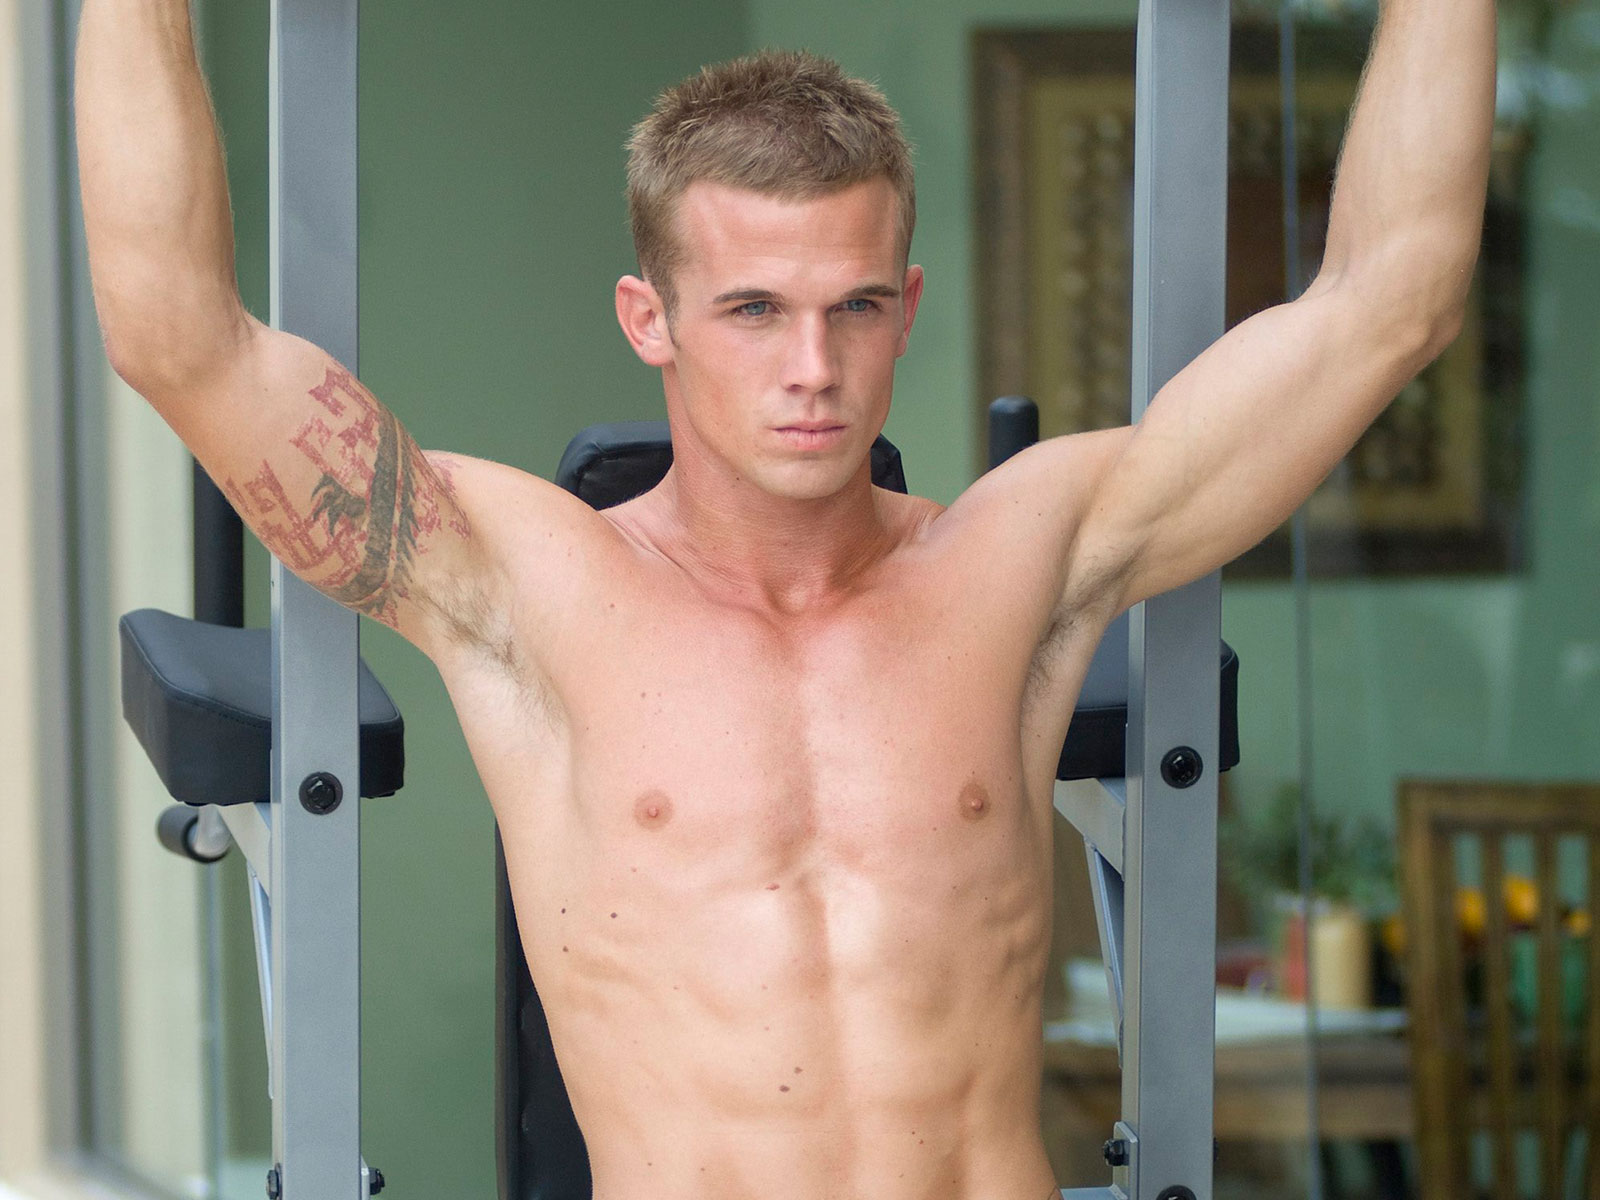 cam gigandet picture image 7 actors. Black Bedroom Furniture Sets. Home Design Ideas